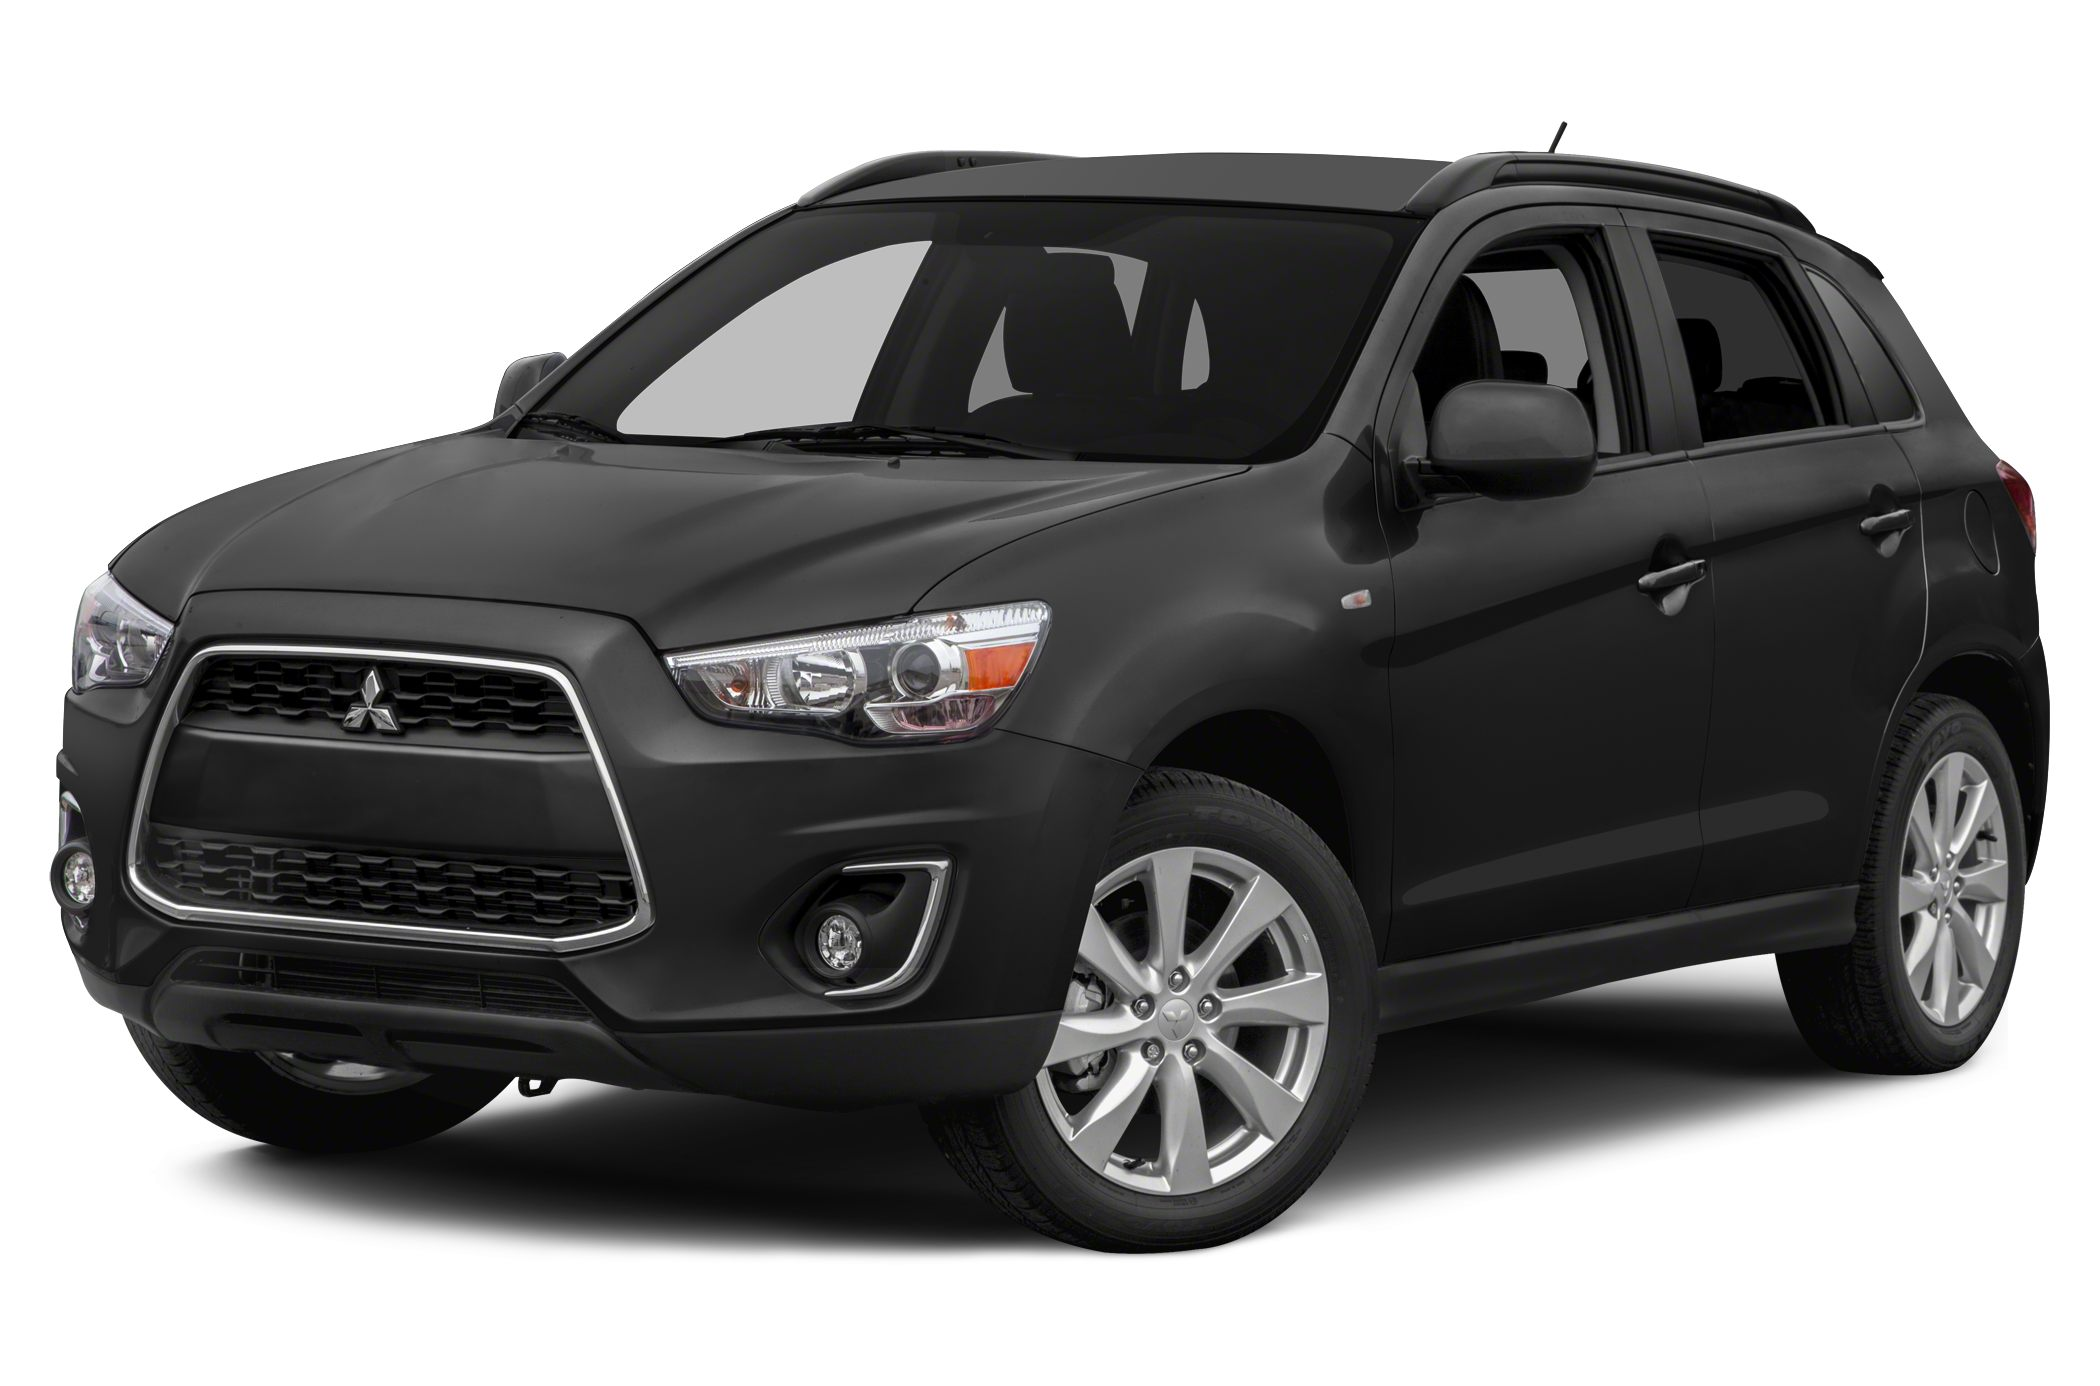 2014 Mitsubishi Outlander Sport SE SUV for sale in Oneonta for $25,620 with 7 miles.